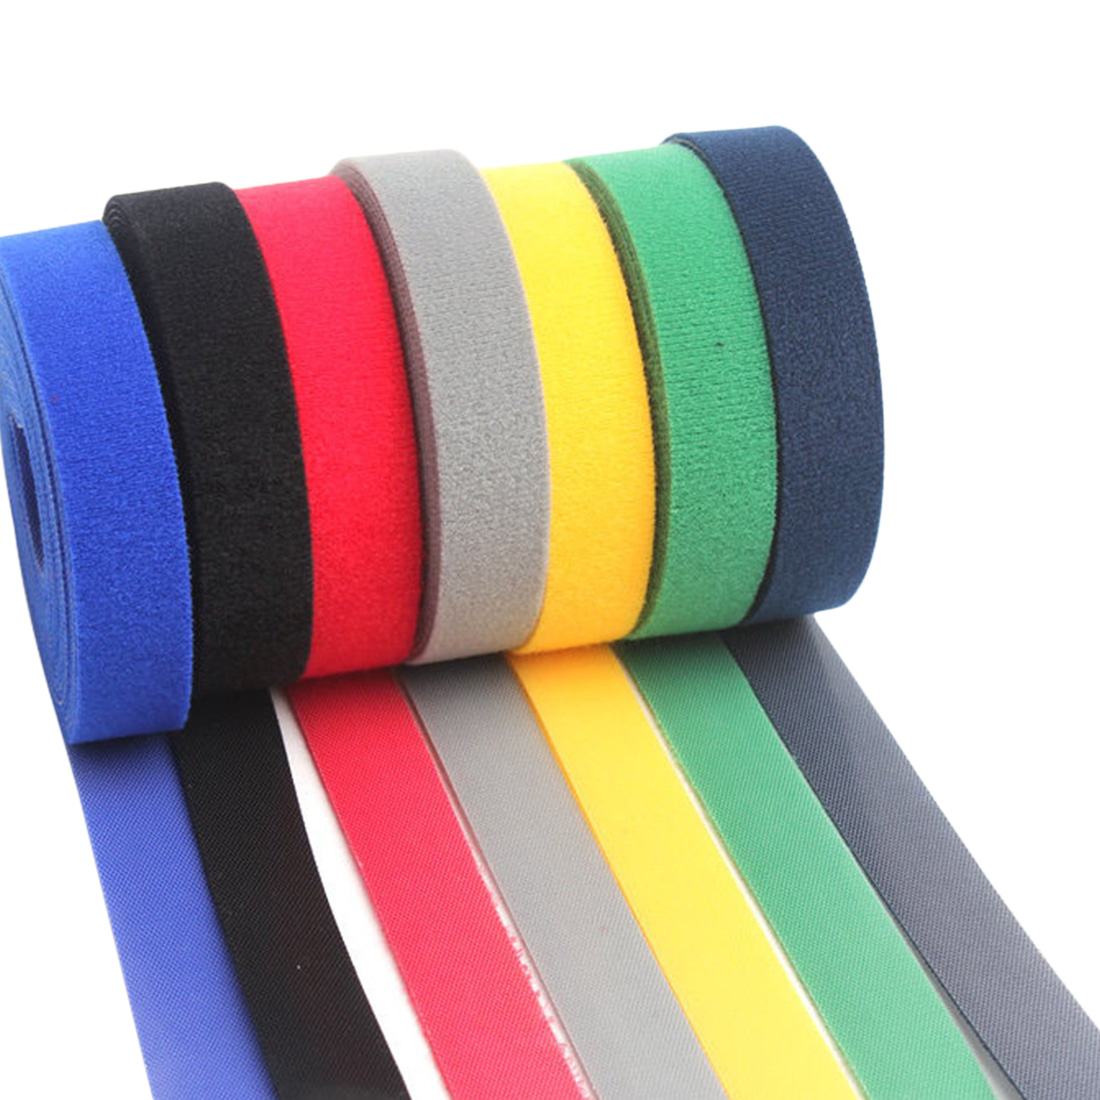 1 Roll Self Adhesive Reusable Cable Tie Nylon Fastener Hook and Loop Strap Cord Ties PC TV Organizer 10mm x 5m(China)